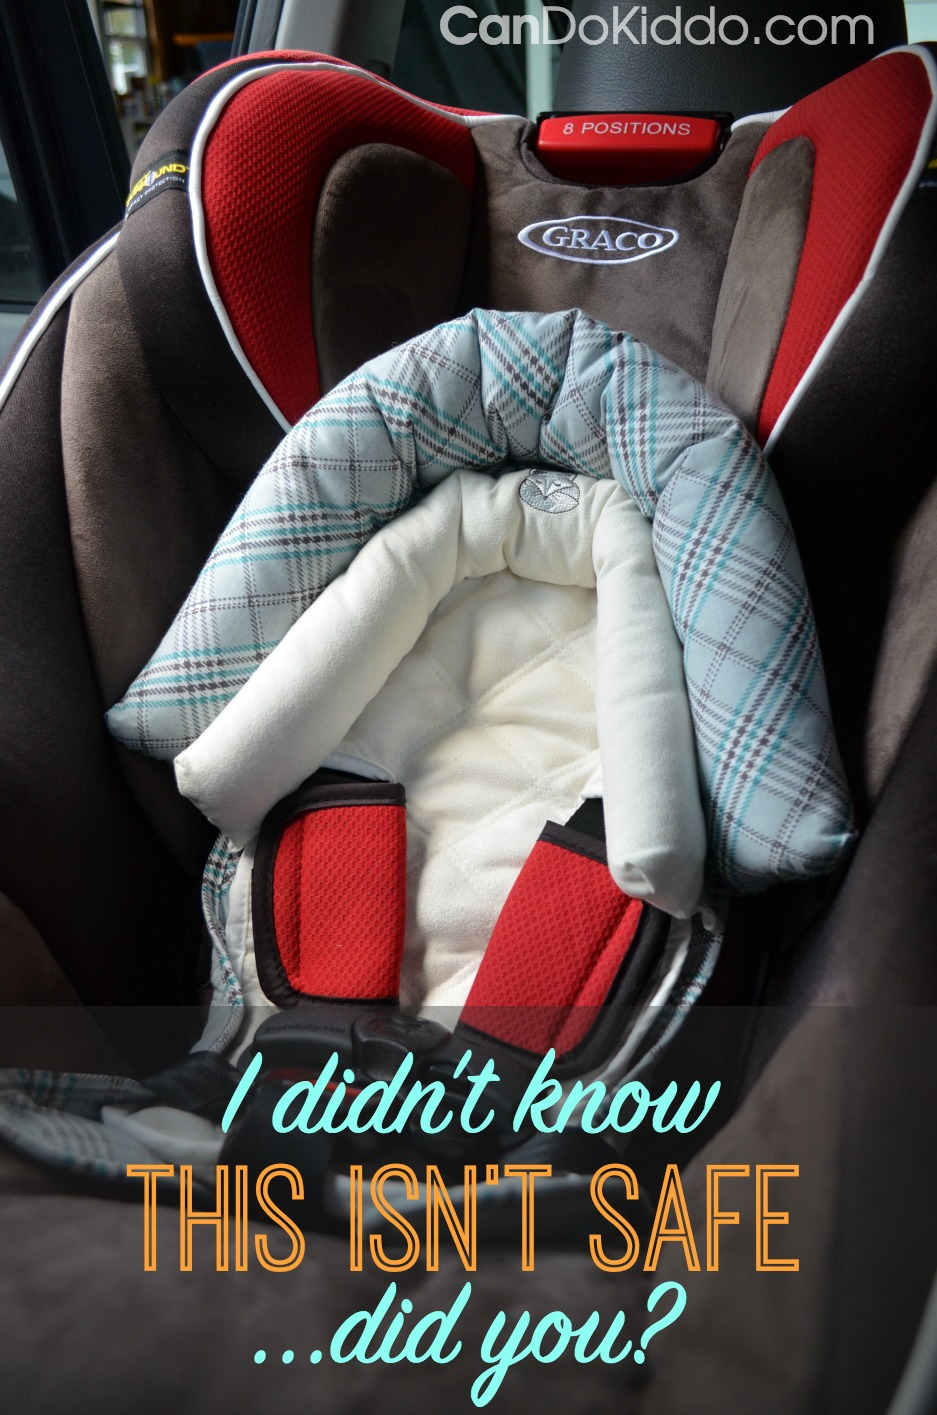 10 Car Seat Safety Mistakes That Might Surprise You Cando Kiddo